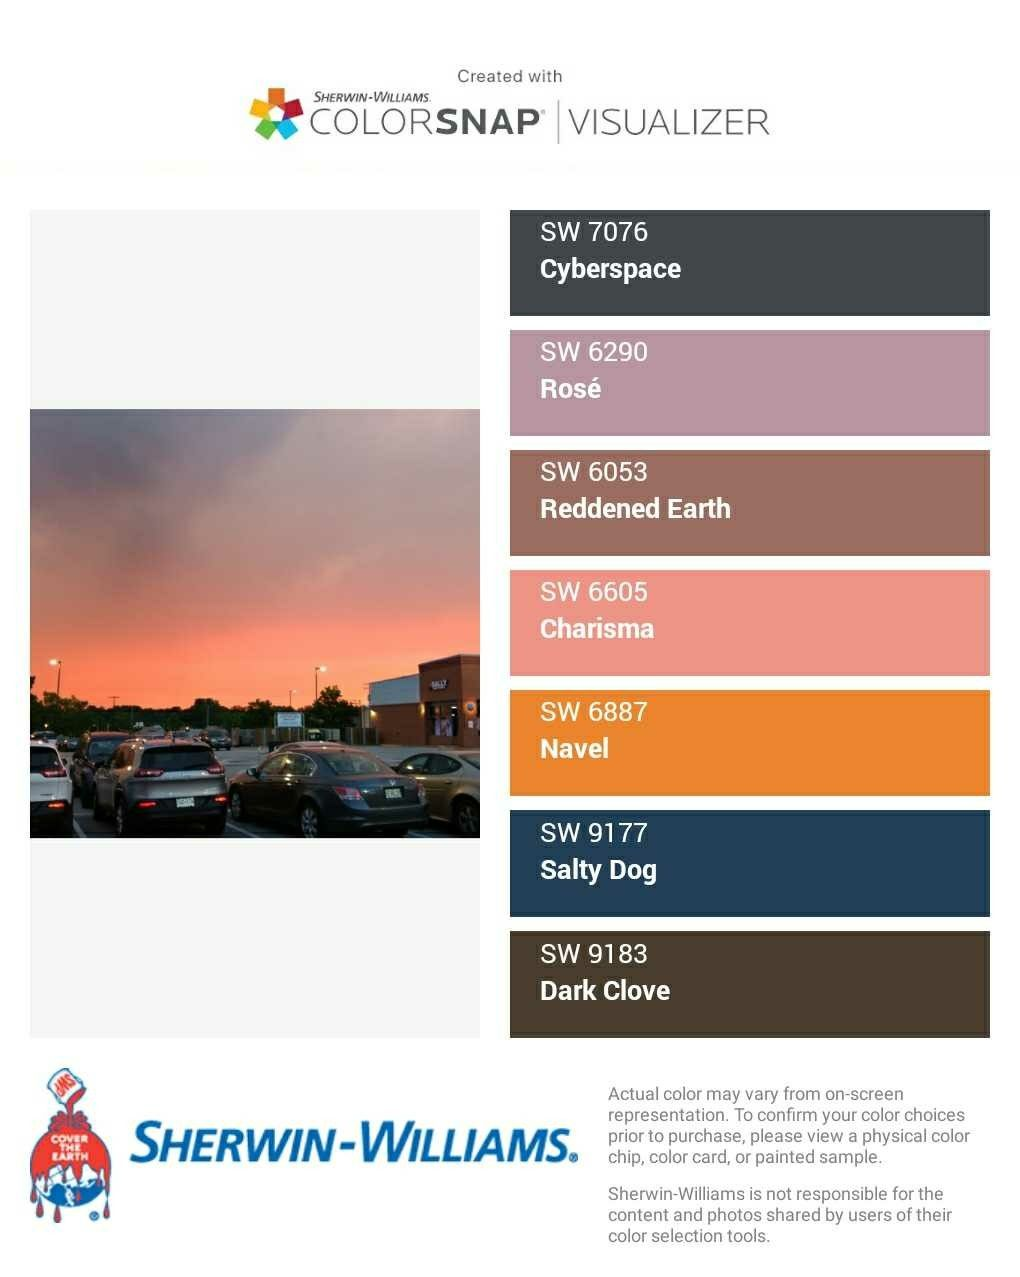 I Just Created This Color Palette With The Sherwin Williams Colorsnap Visualizer On My Android Phone What Do You Think